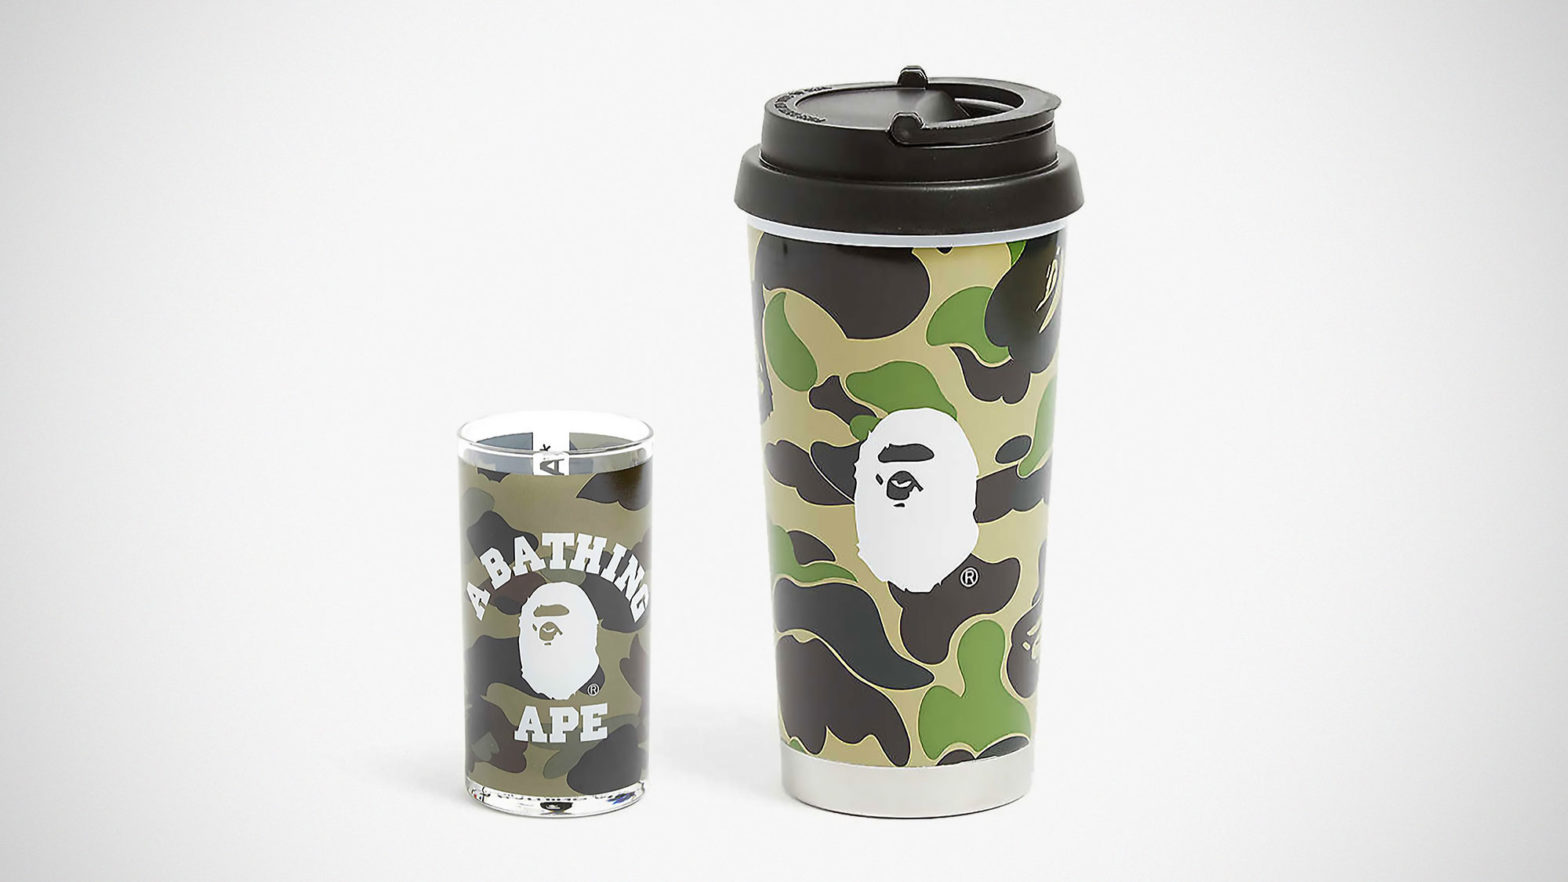 A Bathing Ape Drinking Glasses and Tumbler